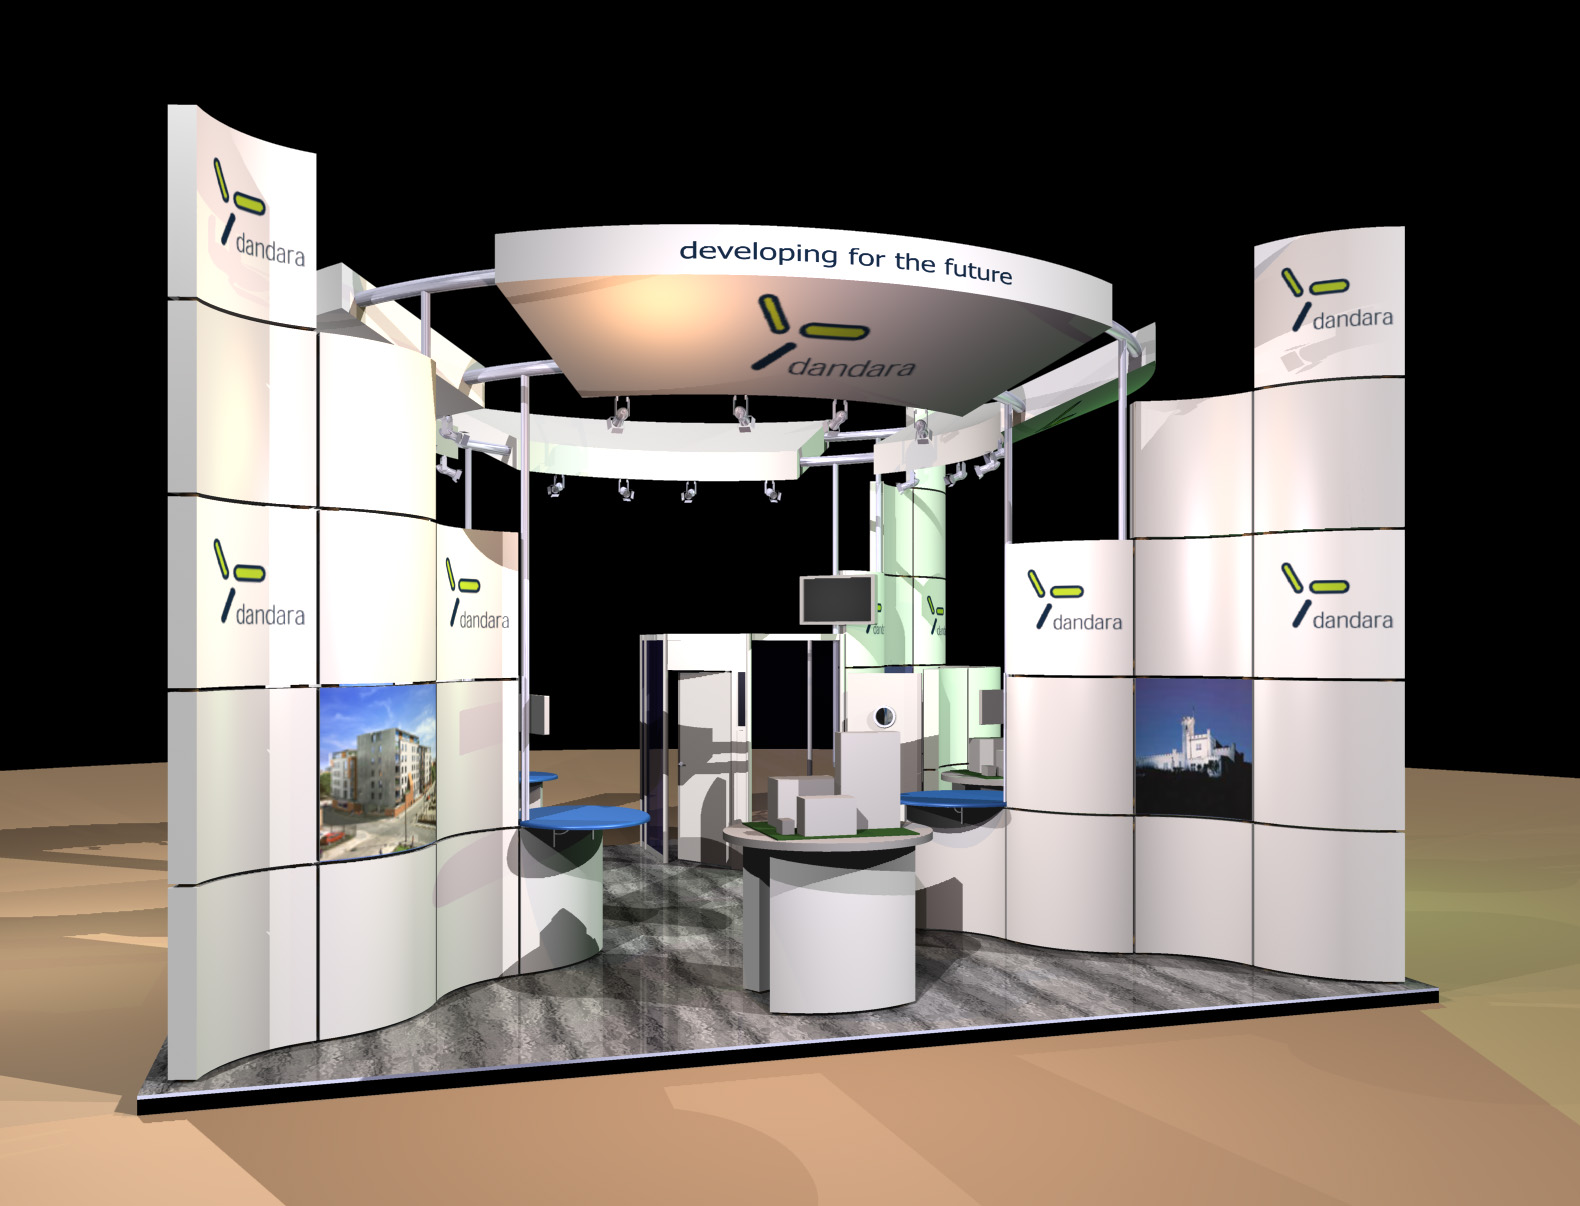 Marketing Exhibition Stand Xo : Exhibition booth design ideas environment